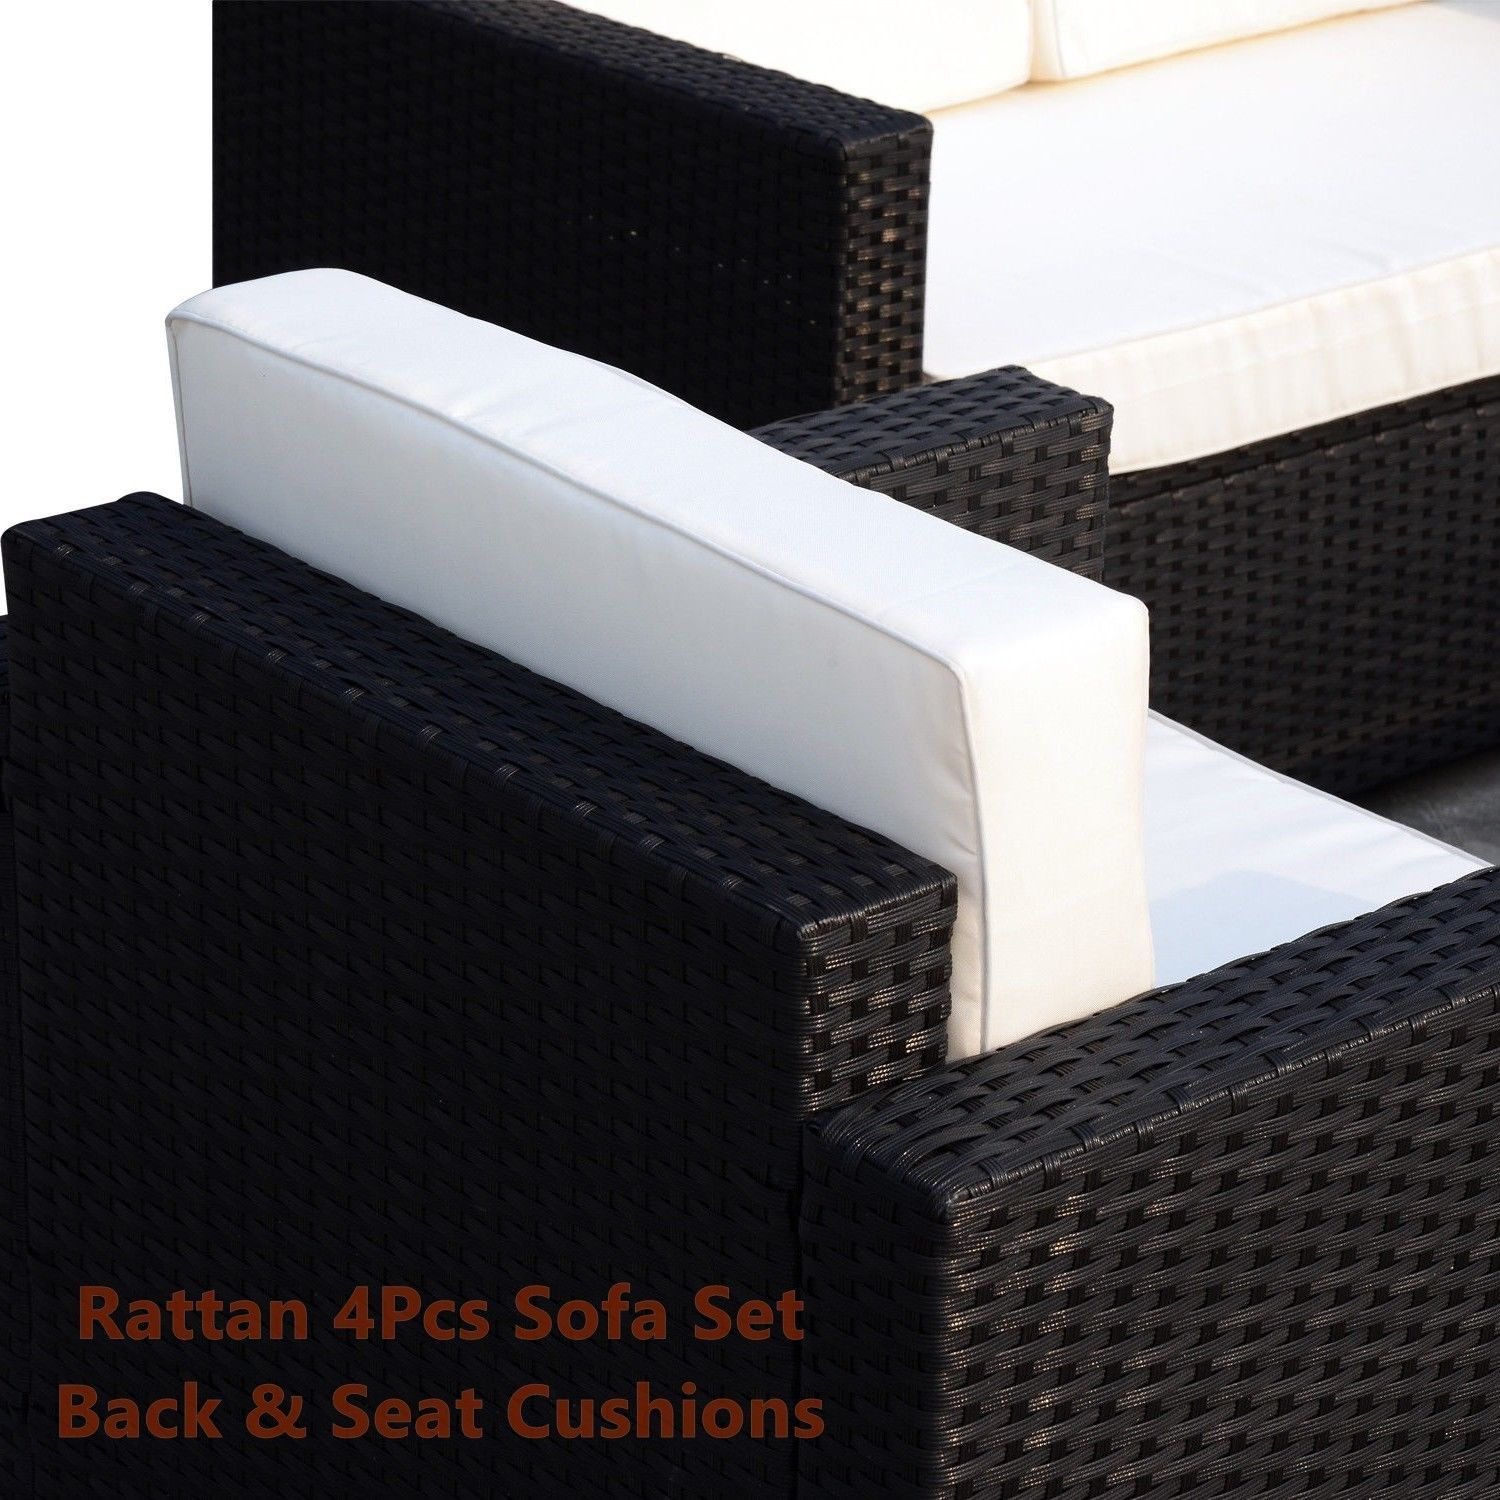 Rattan Sofa Cushioned Set Garden Wicker Glass Top Table Armchairs 4Pcs Black New image 4